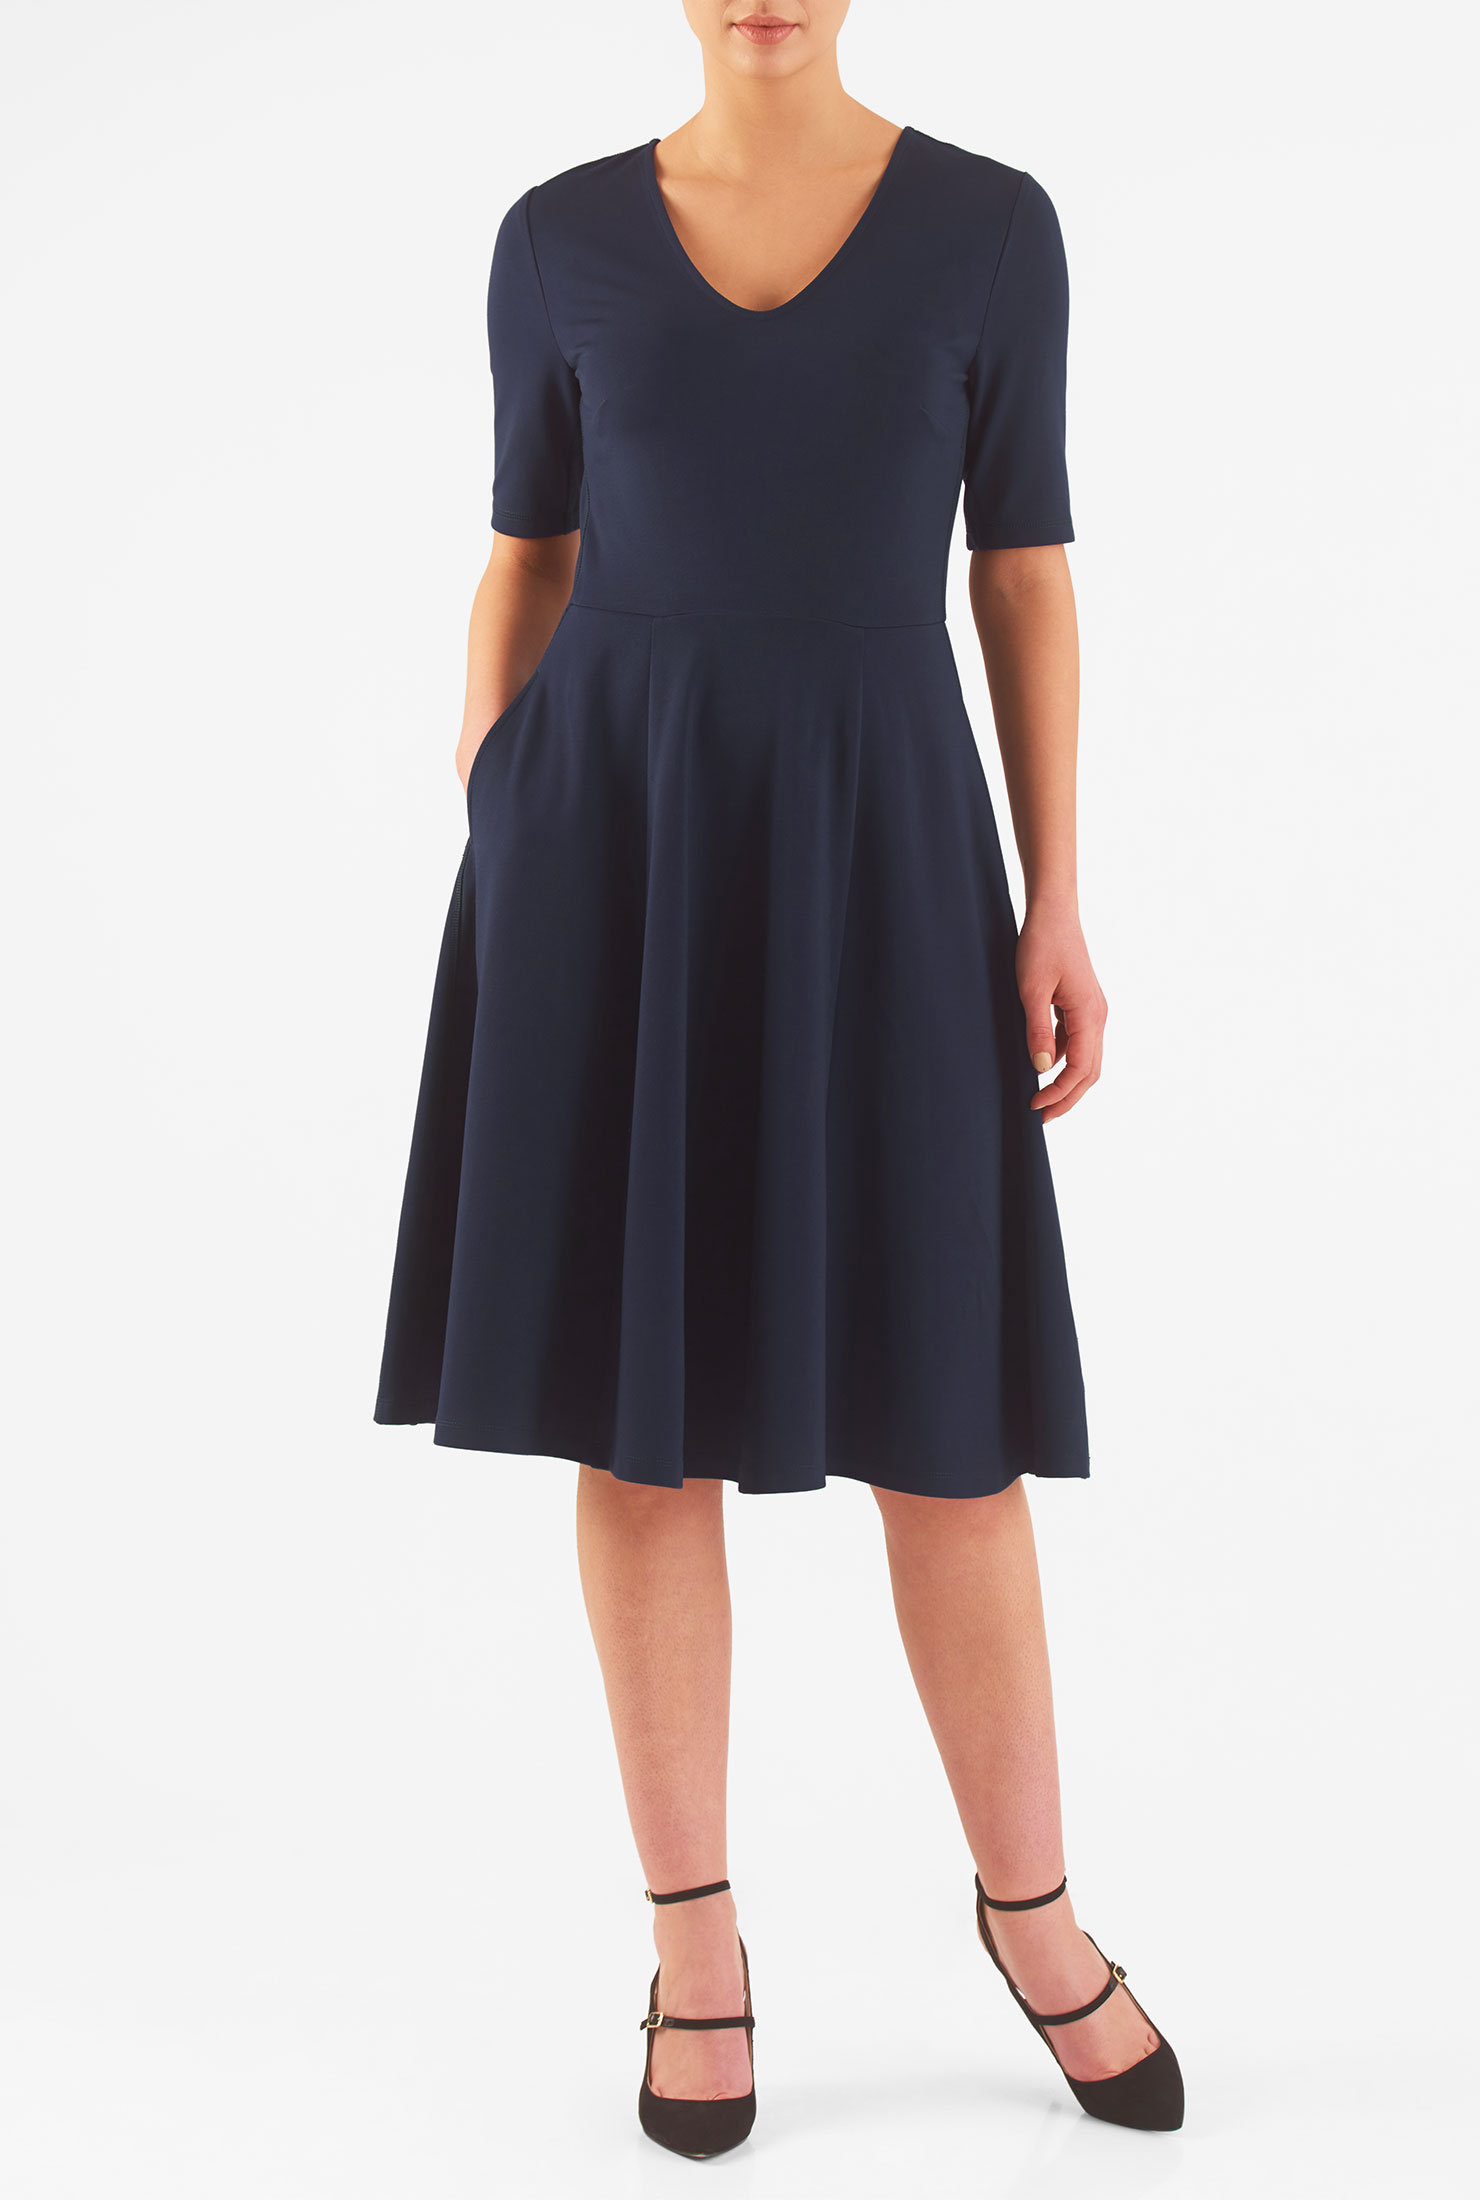 Eshakti Womens Ponte Knit Fit-and-flare Dress